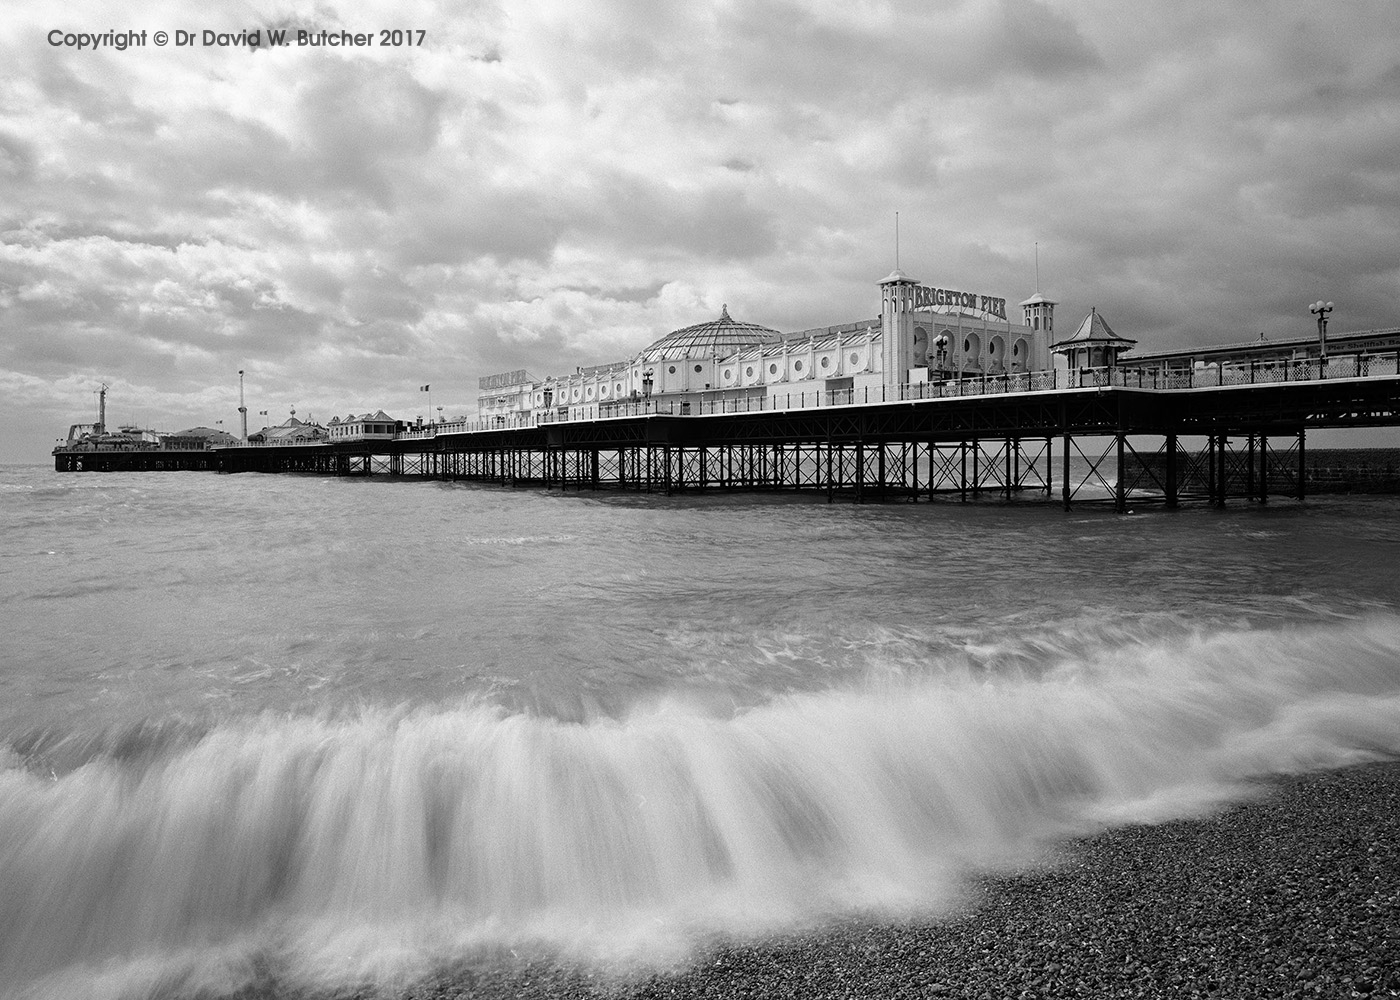 Brighton Pier and Waves, Sussex, England